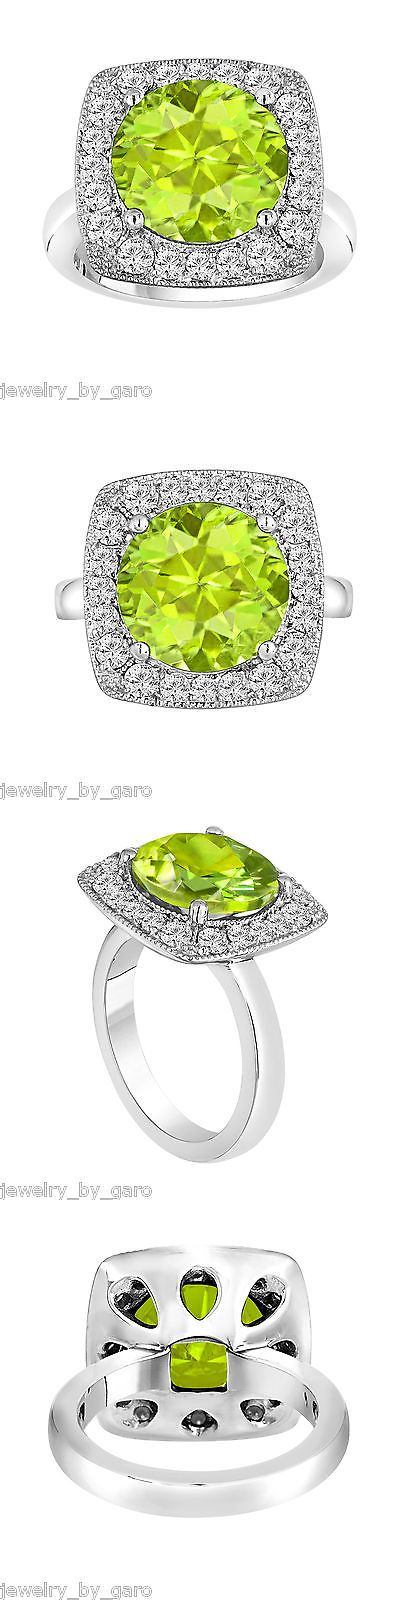 Gemstone 177020: 6.04 Carat Green Peridot And Diamond Engagement Ring 14K White Gold Halo Certified -> BUY IT NOW ONLY: $3485 on eBay!